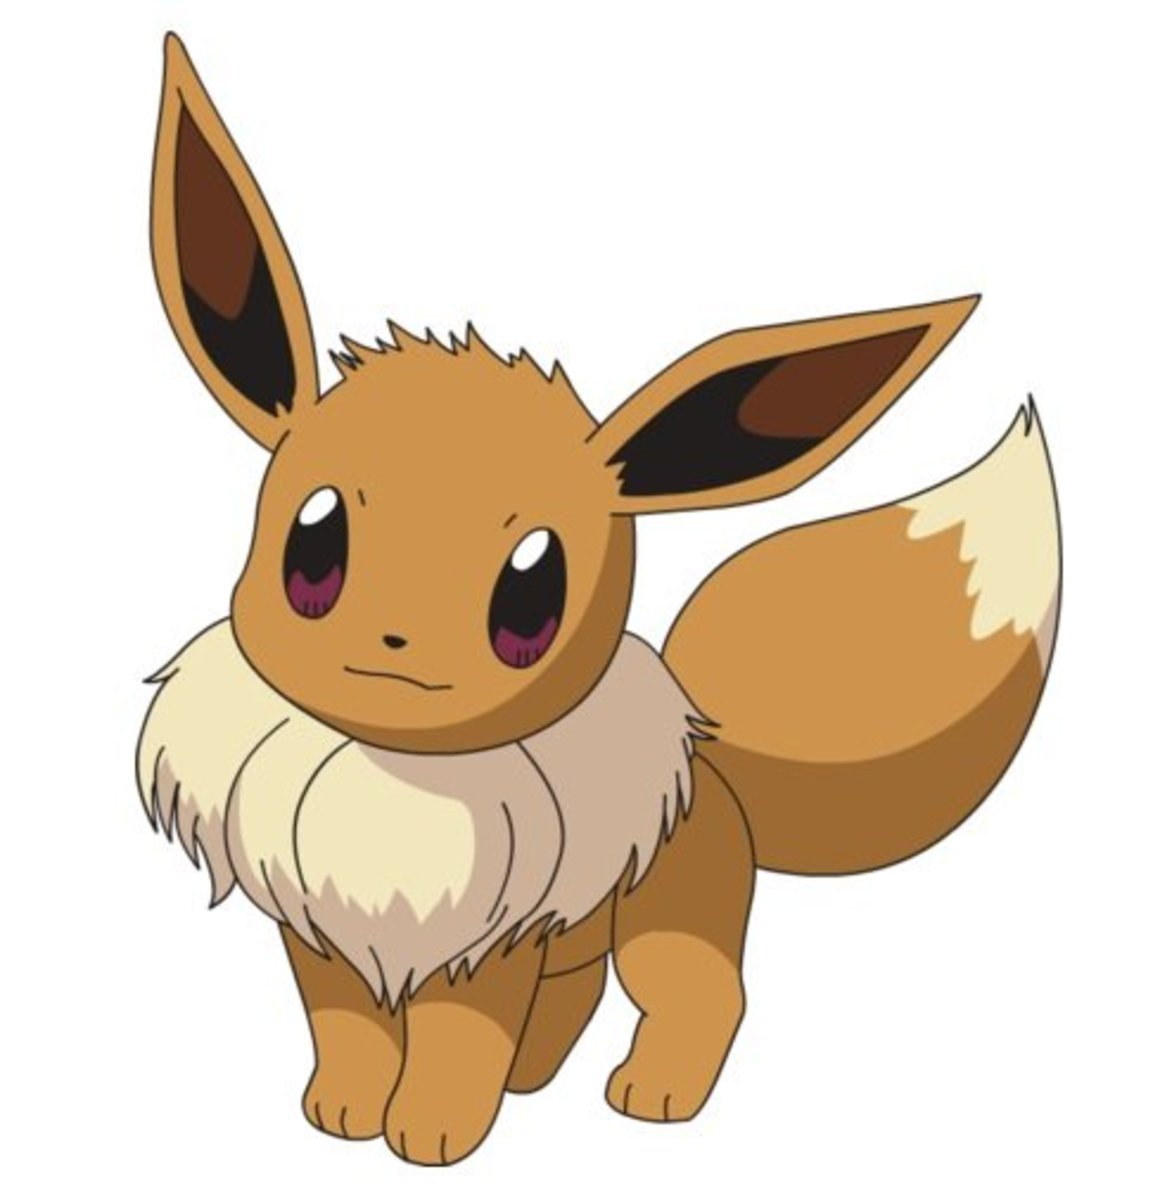 Eevee is a Normal-type that can evolve into many different types of Pokémon.